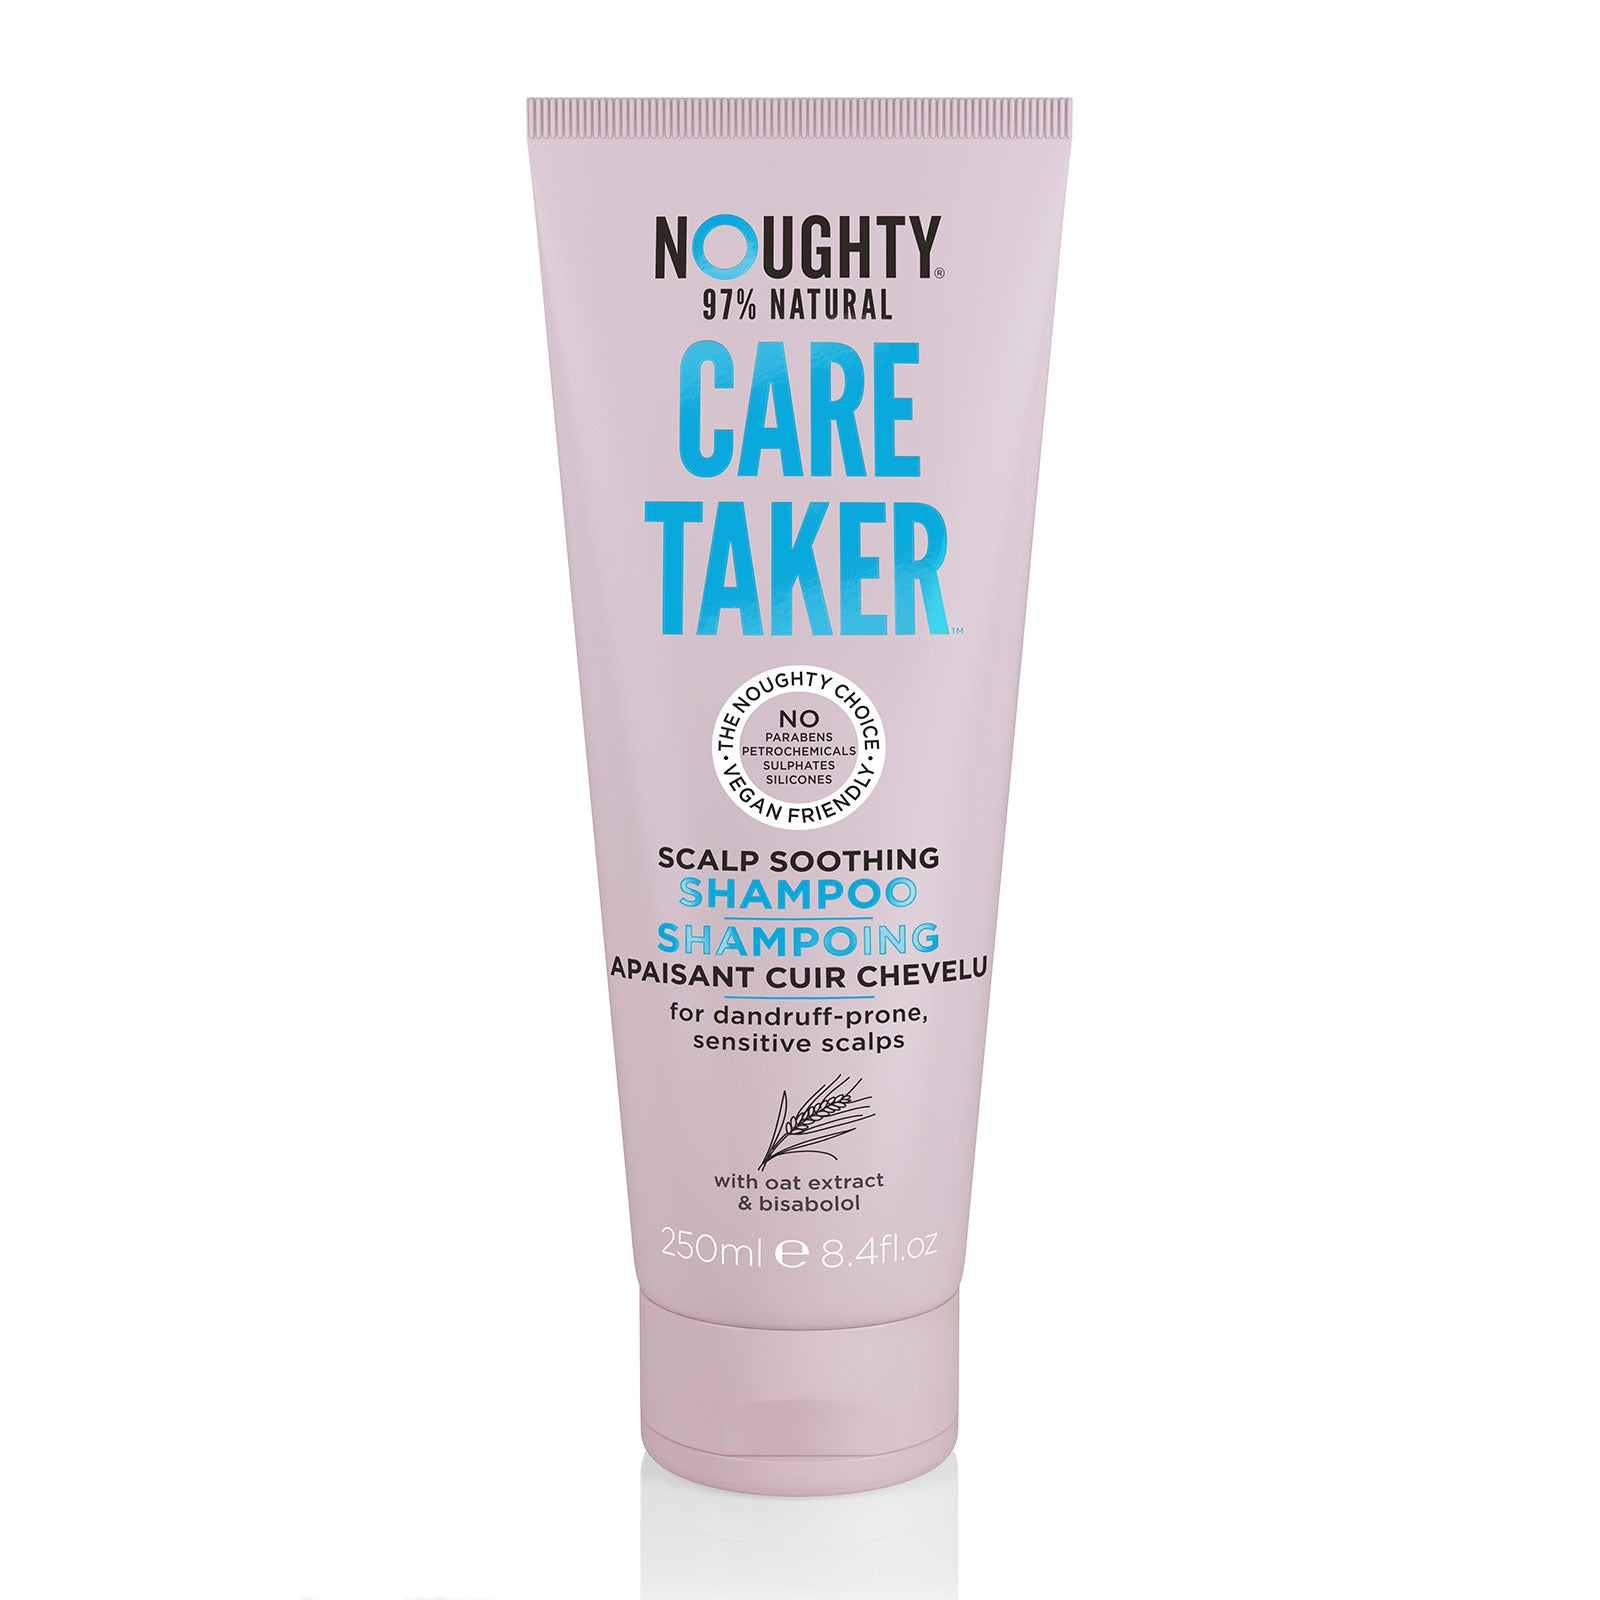 Noughty Care Taker Scalp Soothing Shampoo 250ml